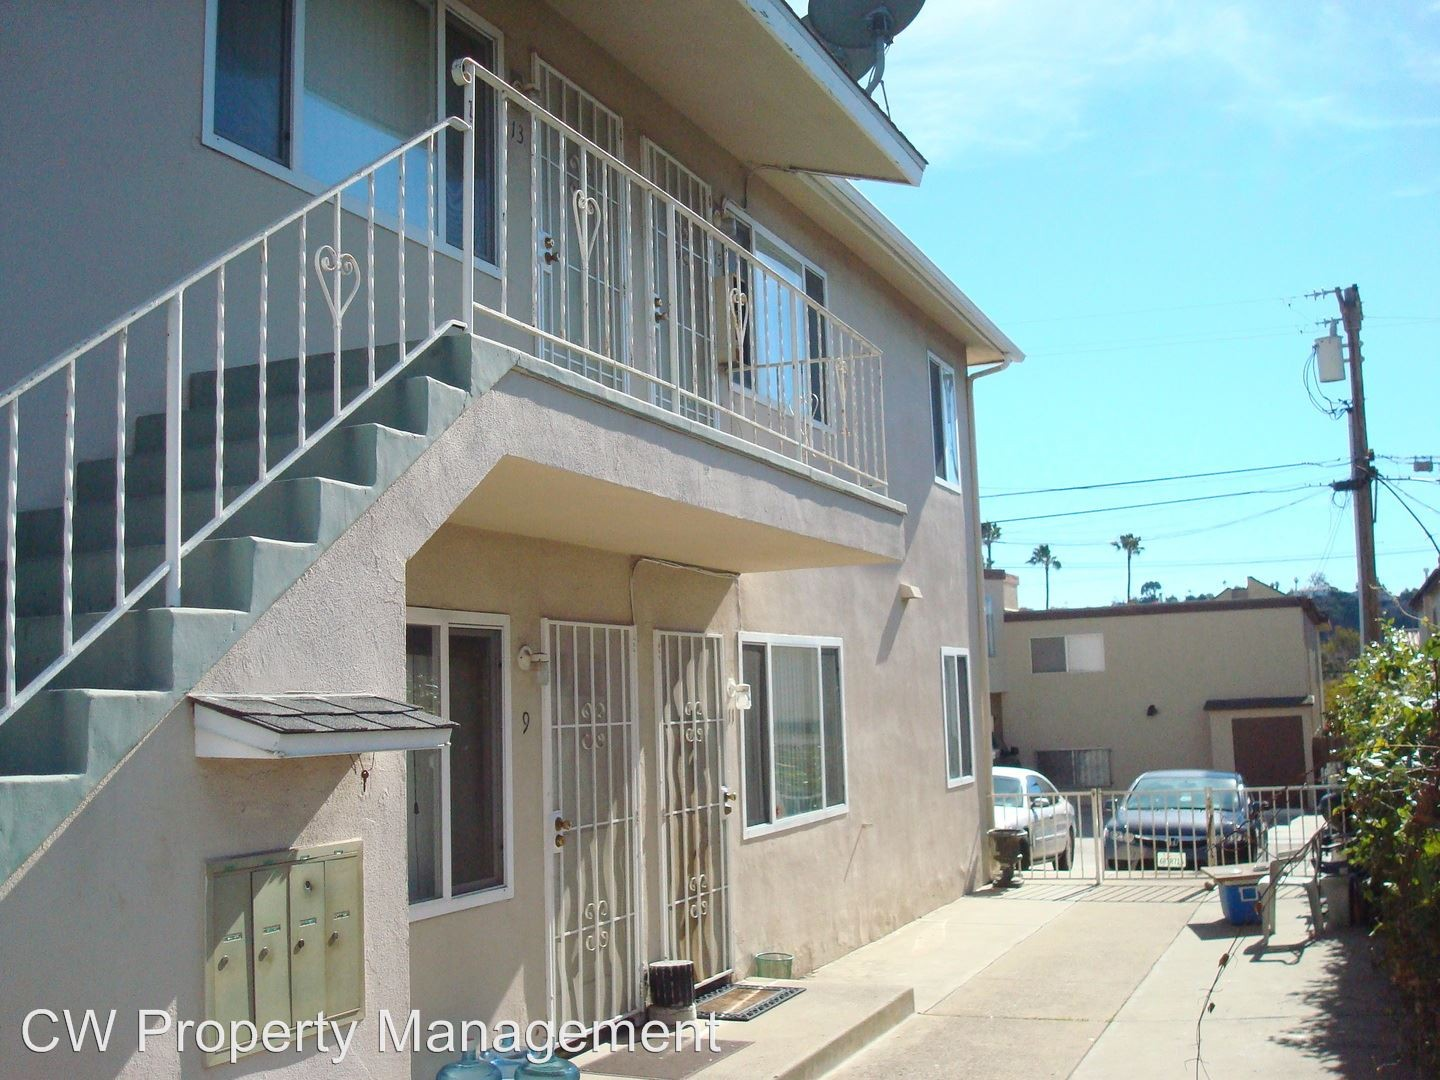 5613 Mildred St San Diego Ca 92110 3 Bedroom House For Rent For 1 675 Month Zumper